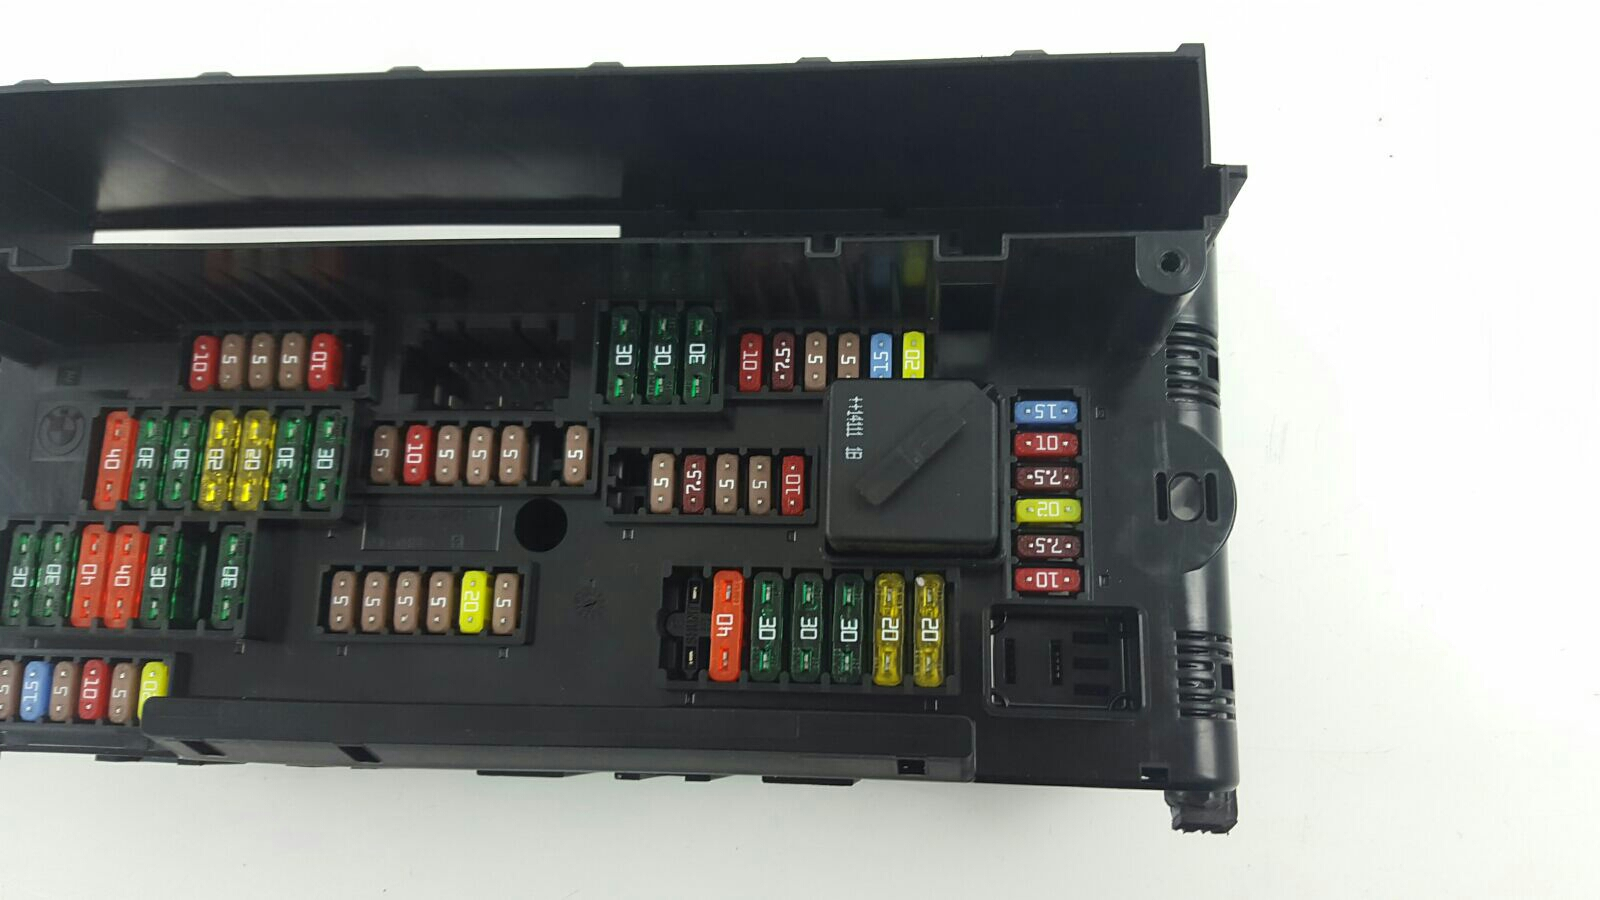 Bmw 5 Series Fuse Box Wiring Diagram Experts 97 2013 To 2016 Diesel Automatic For Sale 1997